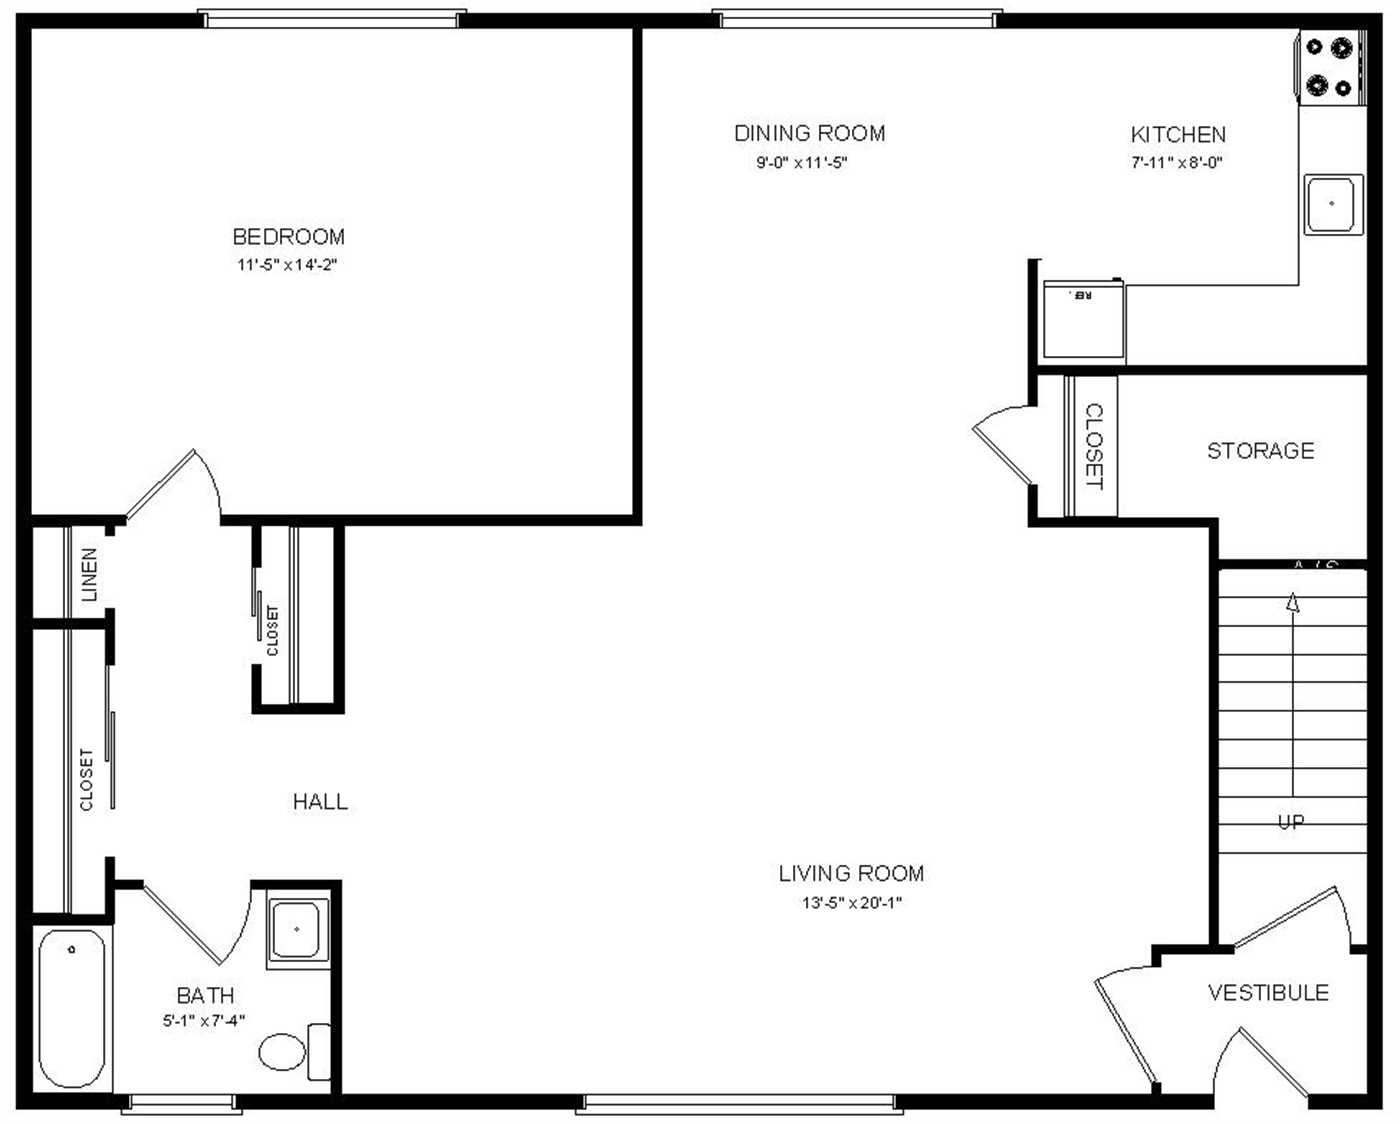 Printable floor plan templates pdf woodworking House design templates